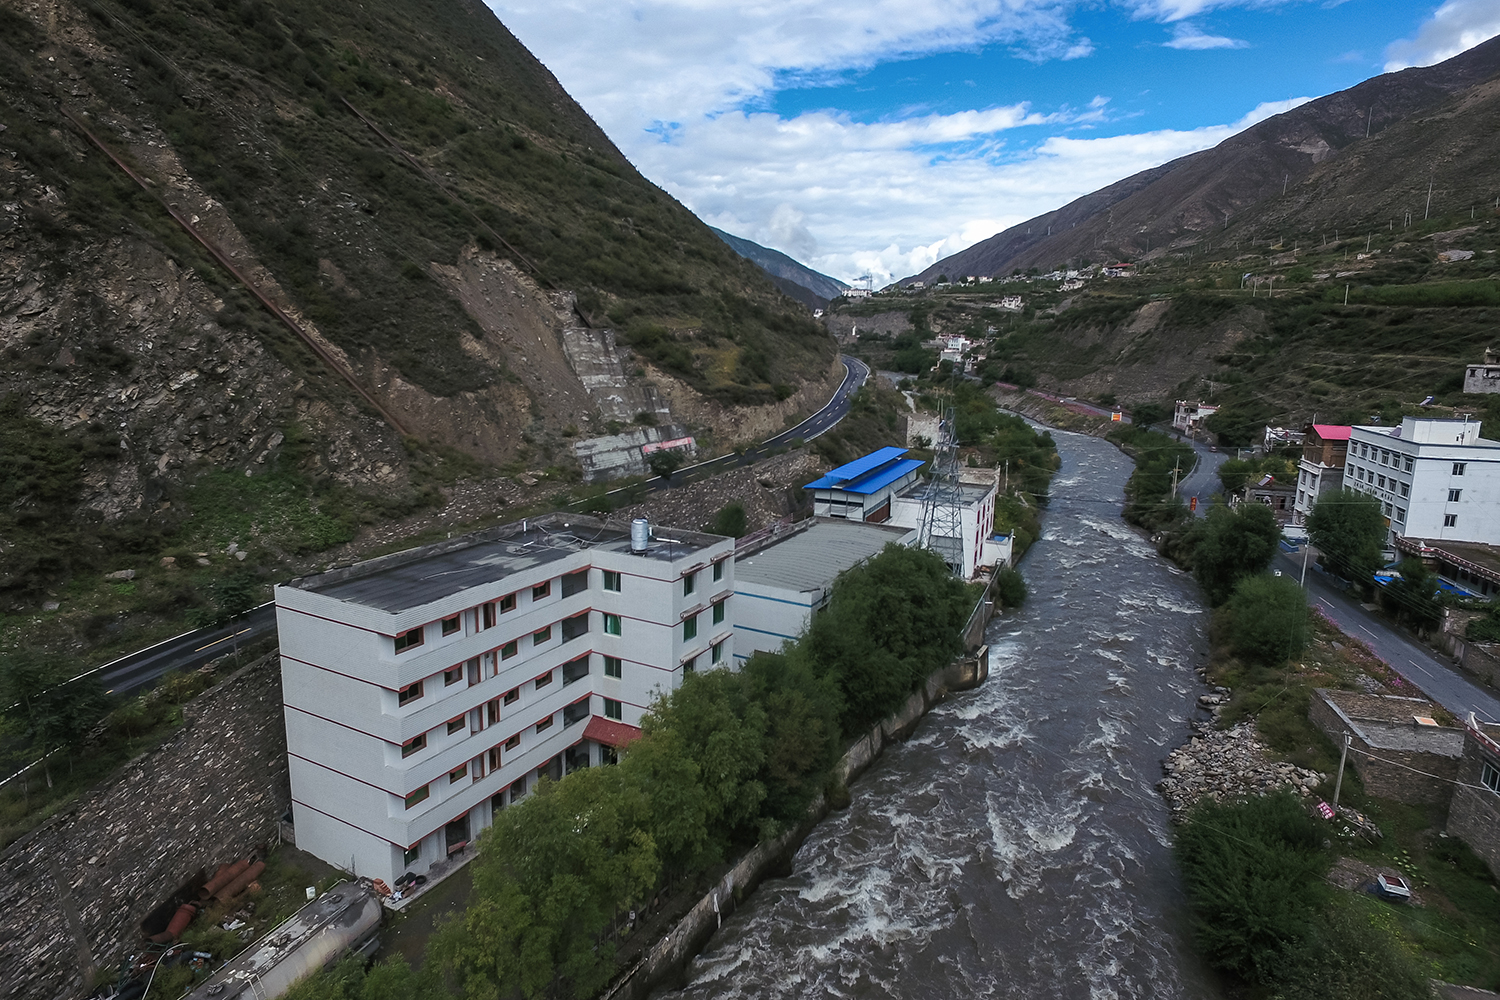 "A Bitcoin ""mine"" with a blue tin roof sits next to a hydroelectric power plant in Ngawa (Aba) Tibetan and Qiang Autonomous Prefecture, Sichuan province, September 27, 2016. Located at the eastern edge of the Tibetan Plateau, the area has abundant hydropower, a key factor in making energy intensive mines cost effective. Electricity typically accounts for 60-70 percent of a bitcoin mine's expenses."